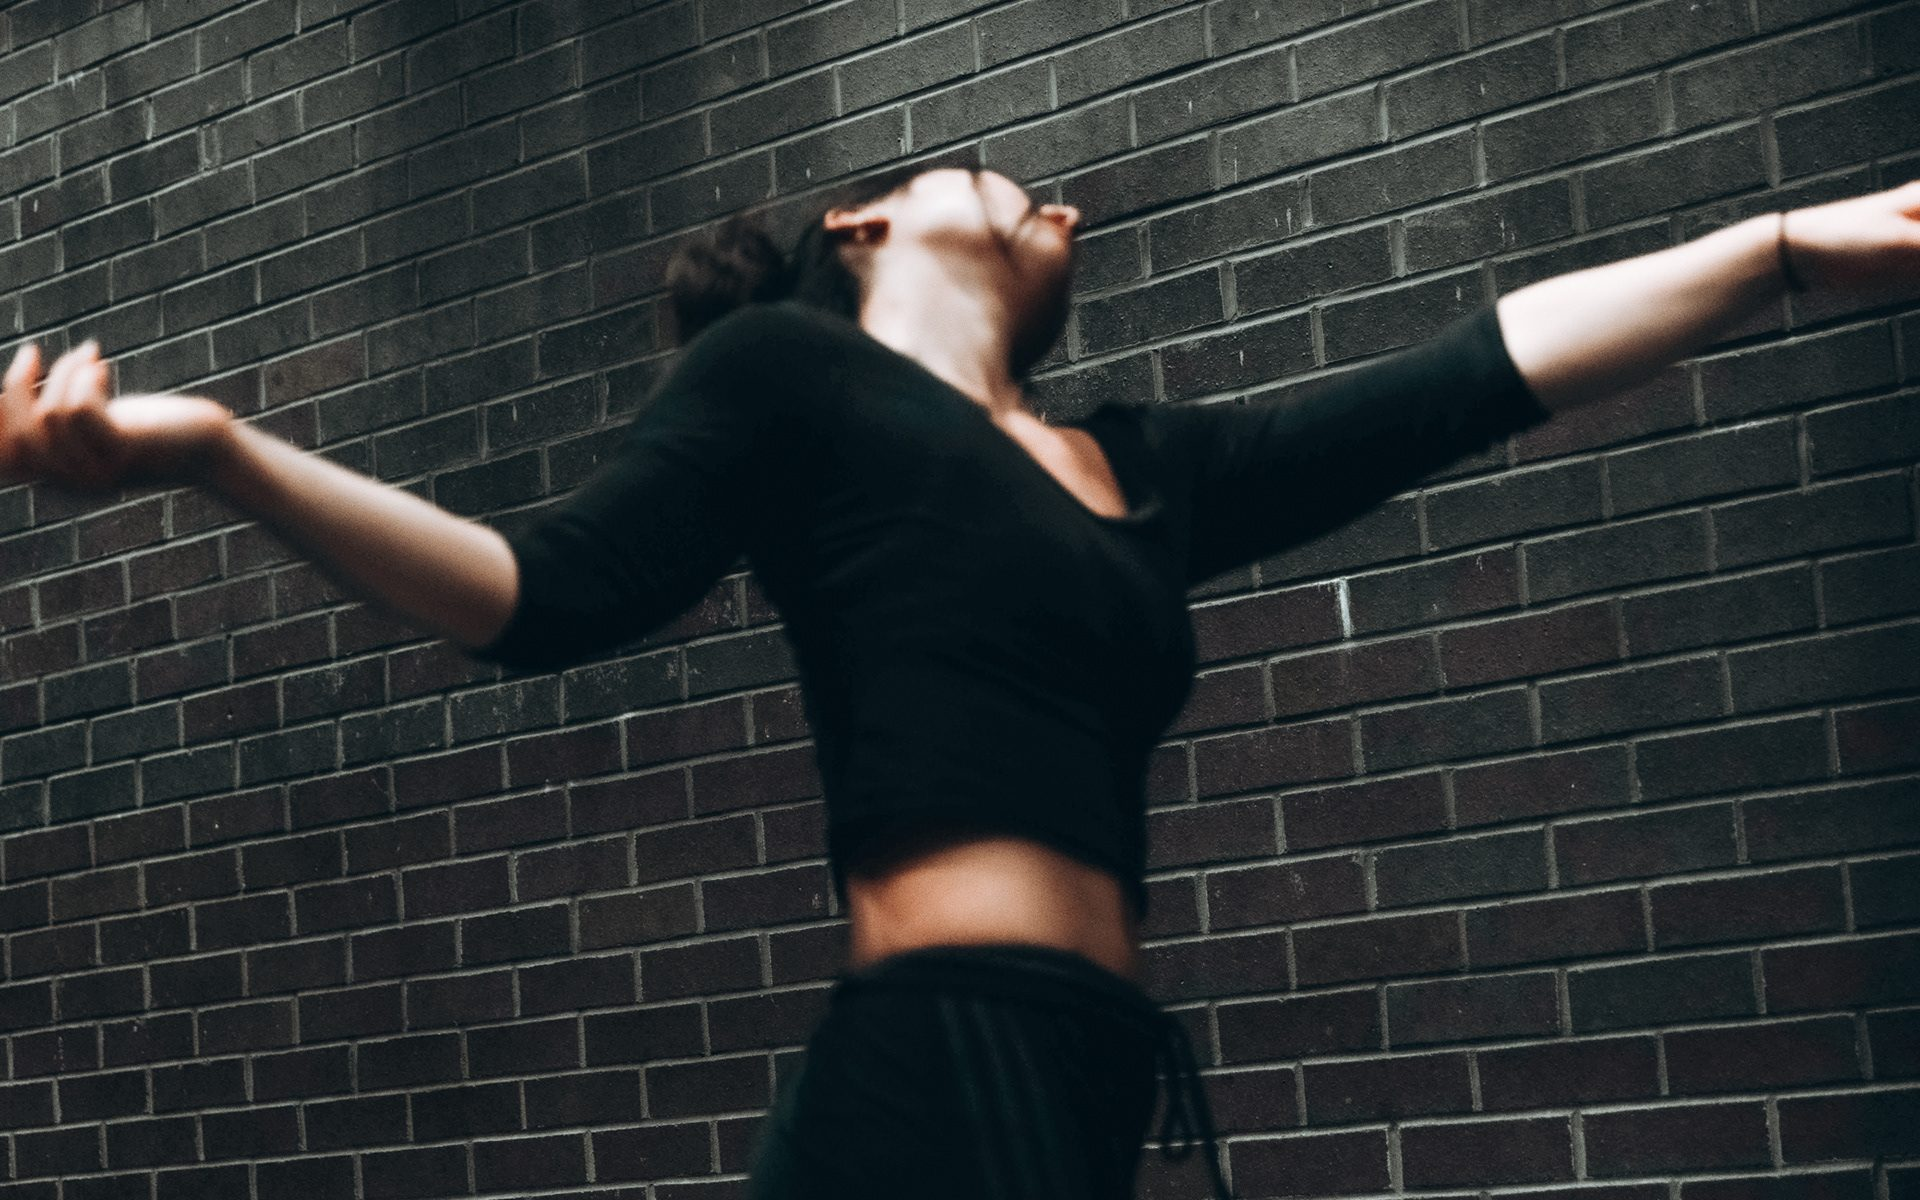 Lila from a low angle, dancing in front of a dark brick wall. Her arms are stretched out to her side, her head turned away from the camera.